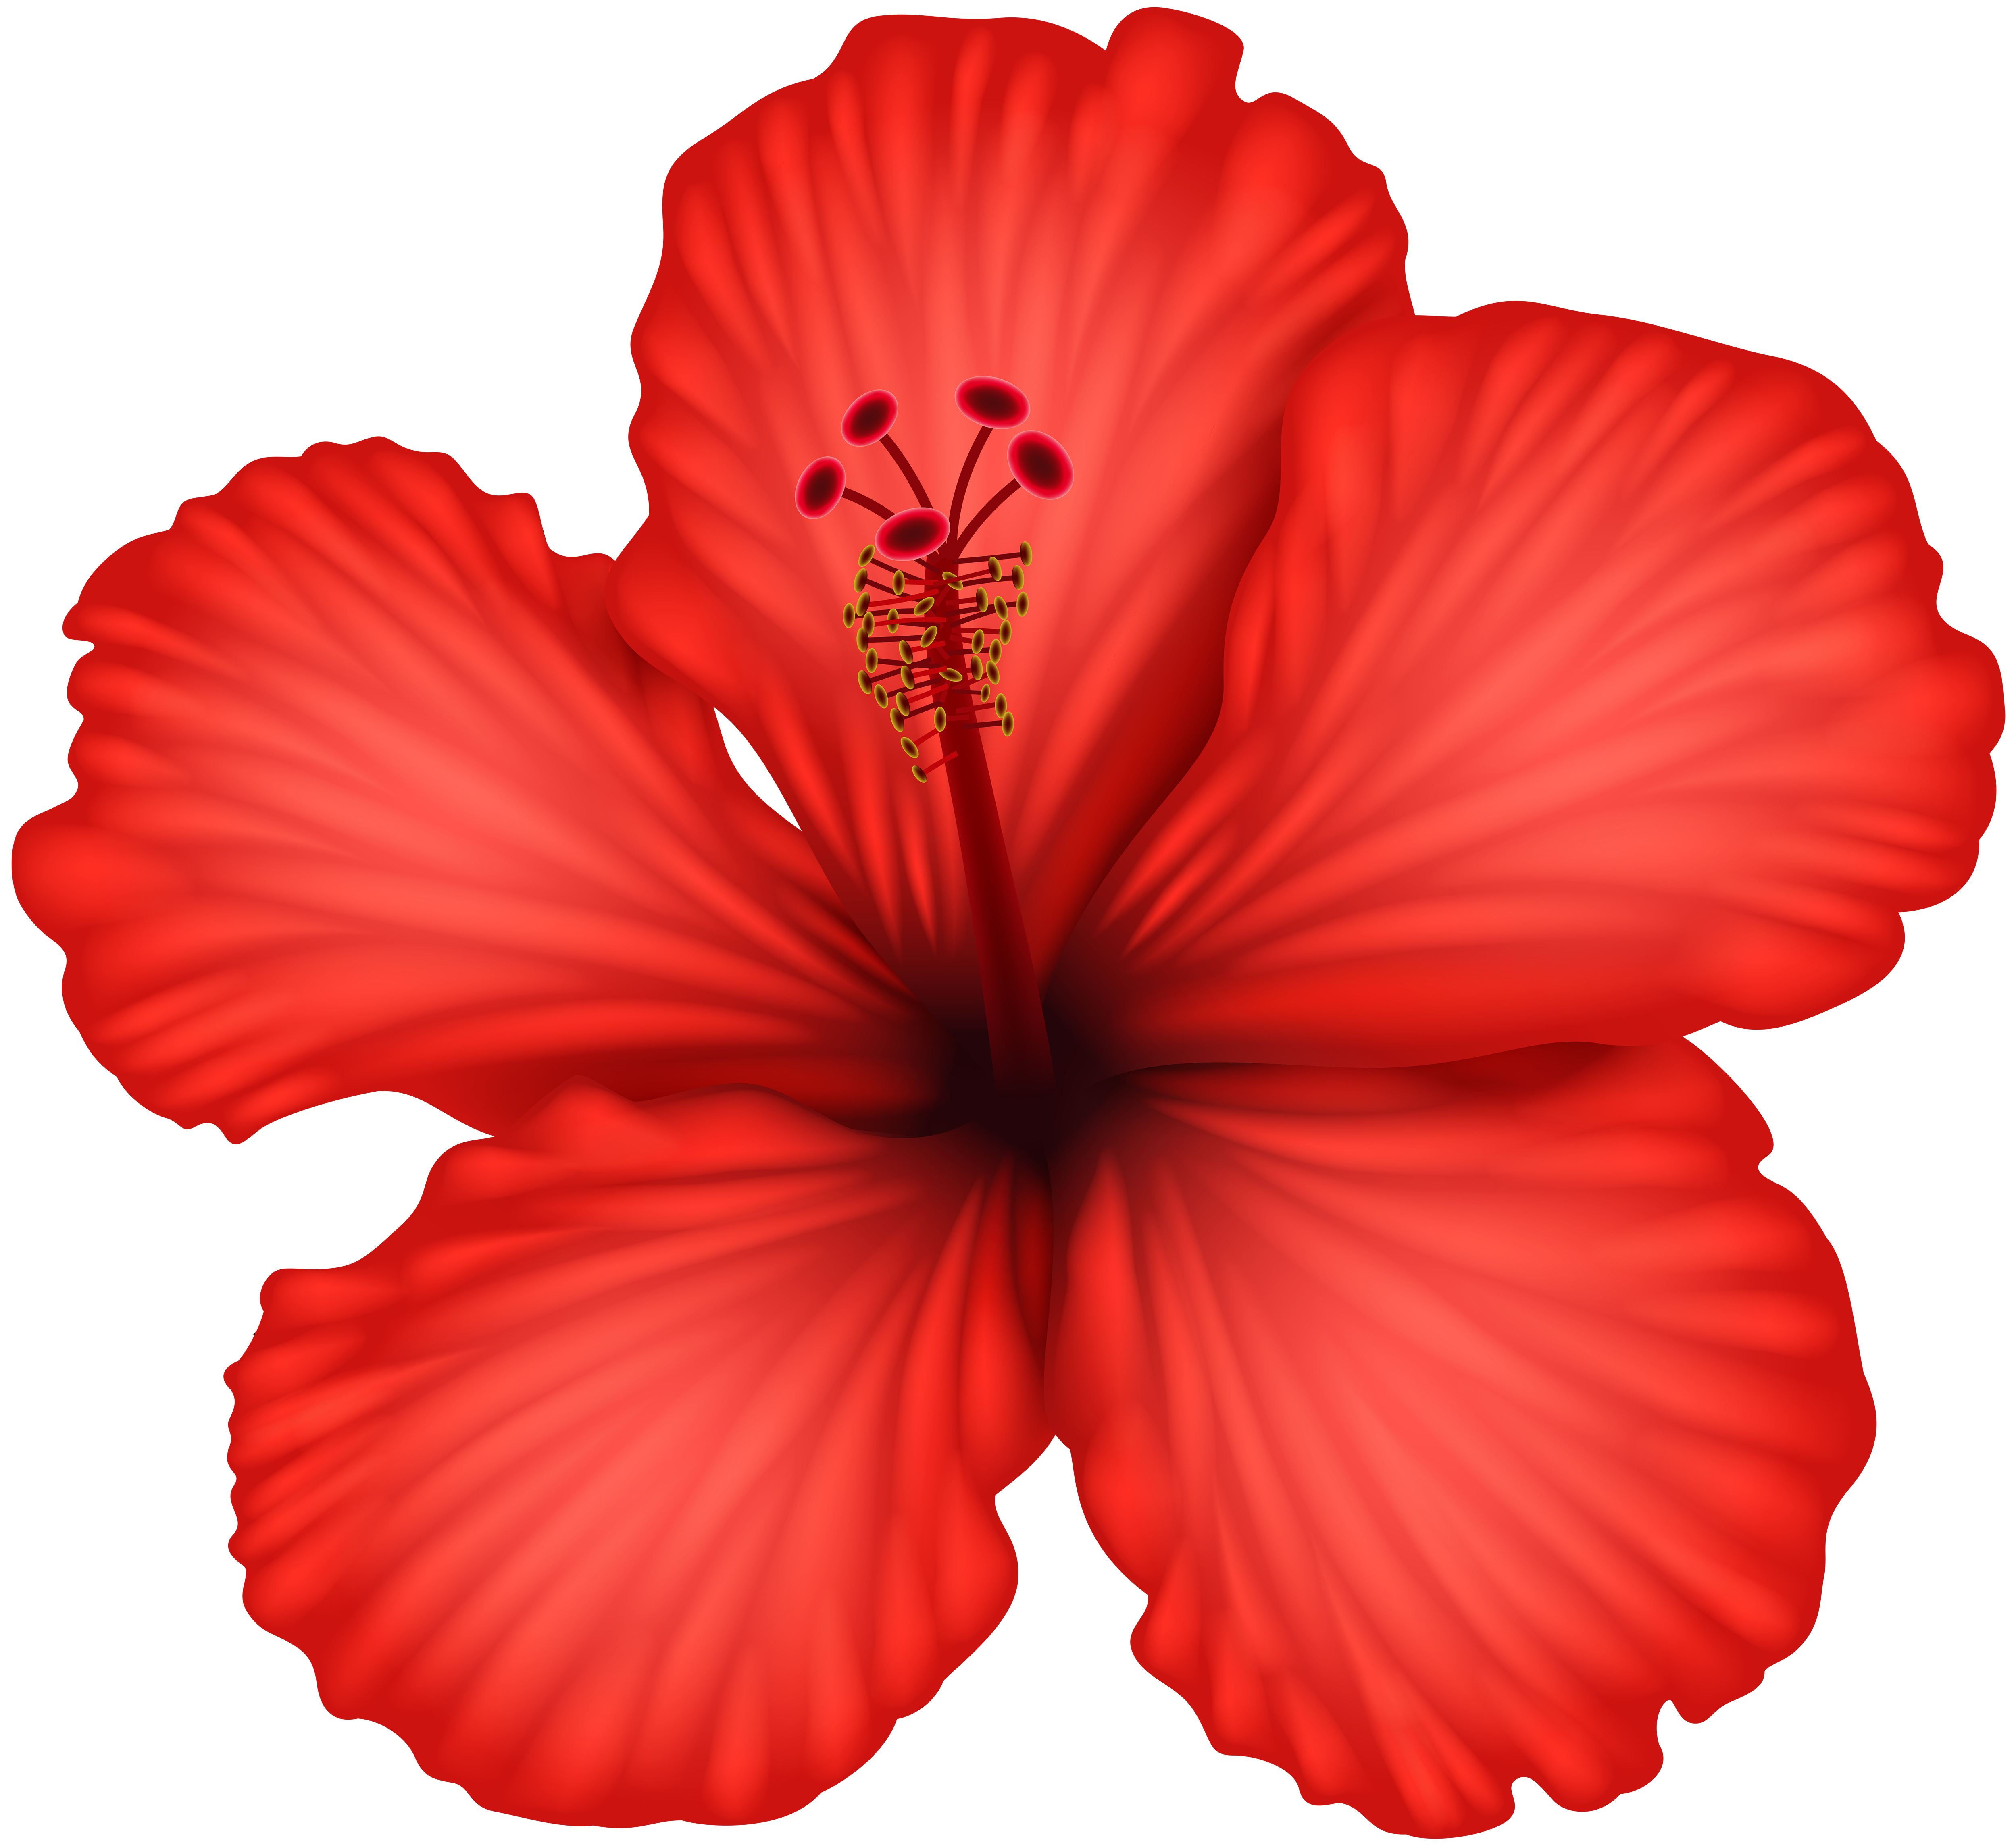 Red Hibiscus Png Clip Art Gallery Yopriceville High Quality Images And Transparent Png Free Clipart Free Watercolor Flowers Hibiscus Image Flower Painting